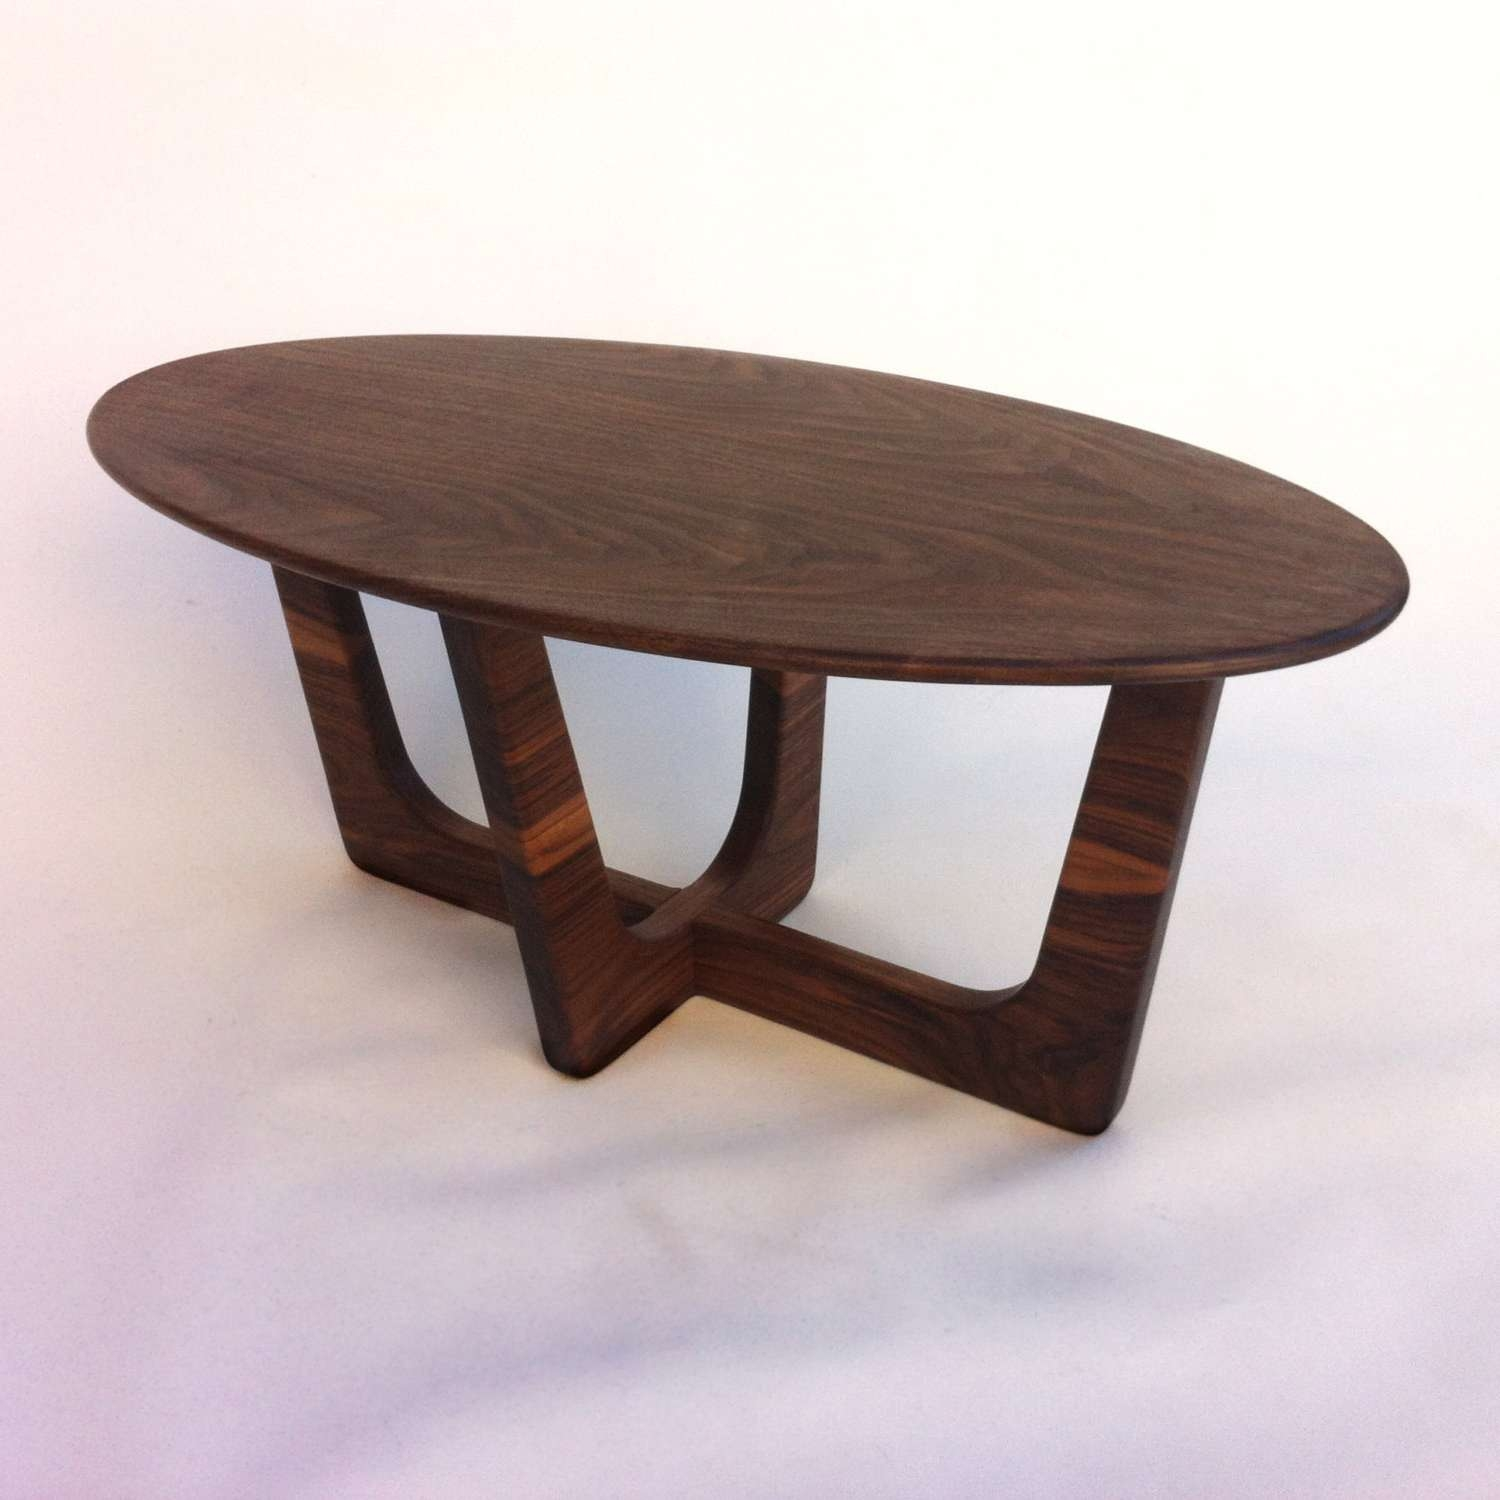 Mid Century Modern Oval Coffee Table Adrian Pearsall Inside Recent Oblong Coffee Tables (View 13 of 20)